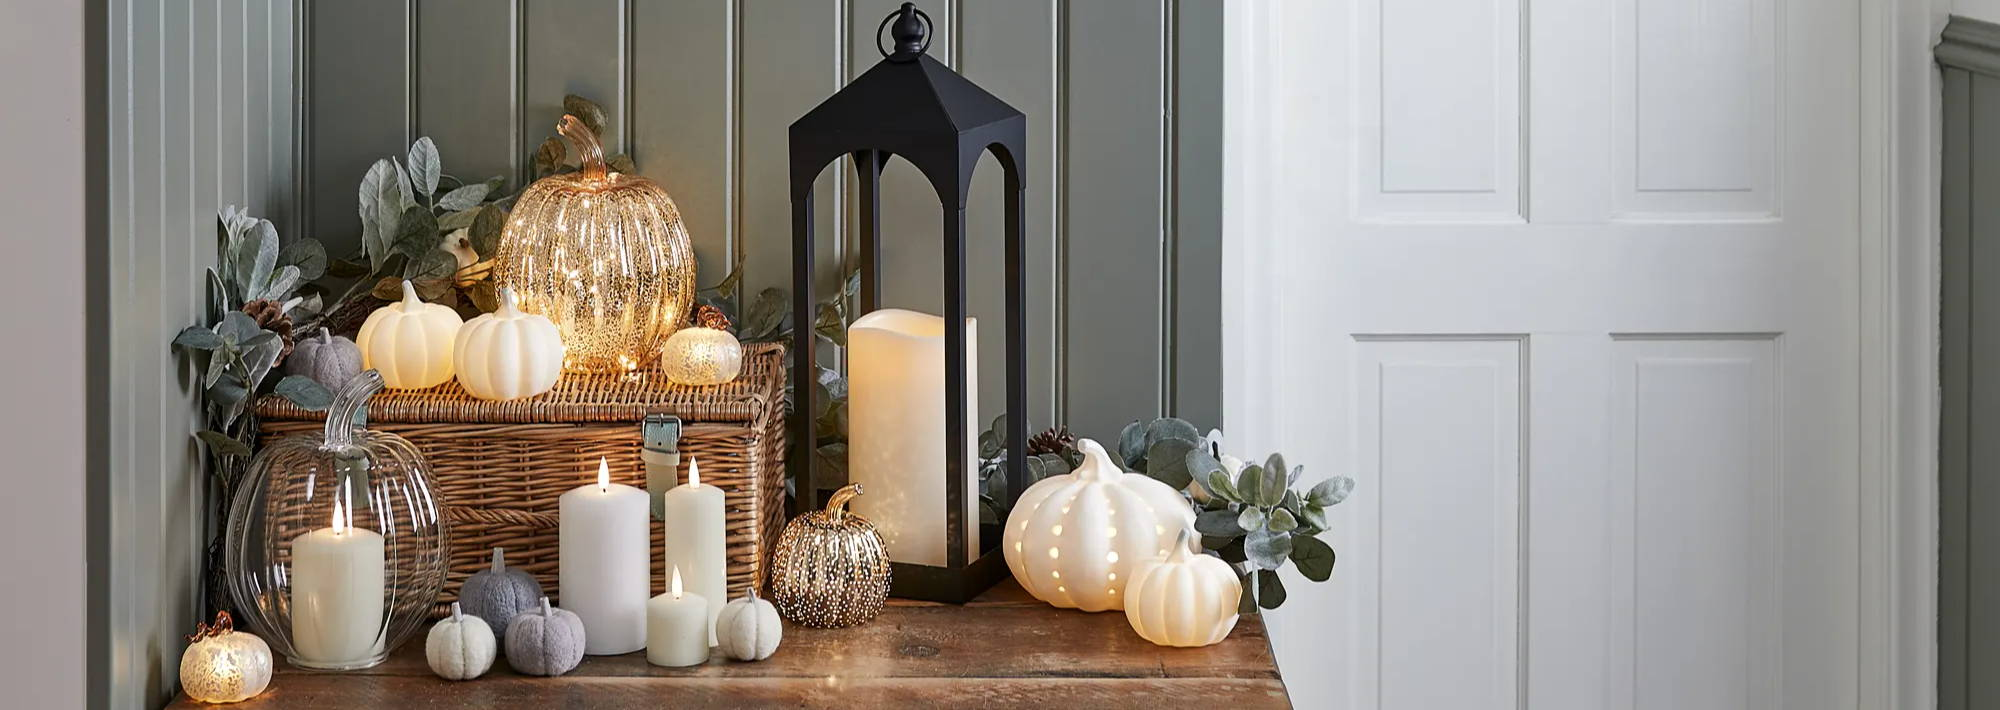 Fall table display with flameless candle lantern, pumpkin decor and TruGlow candles illuminated